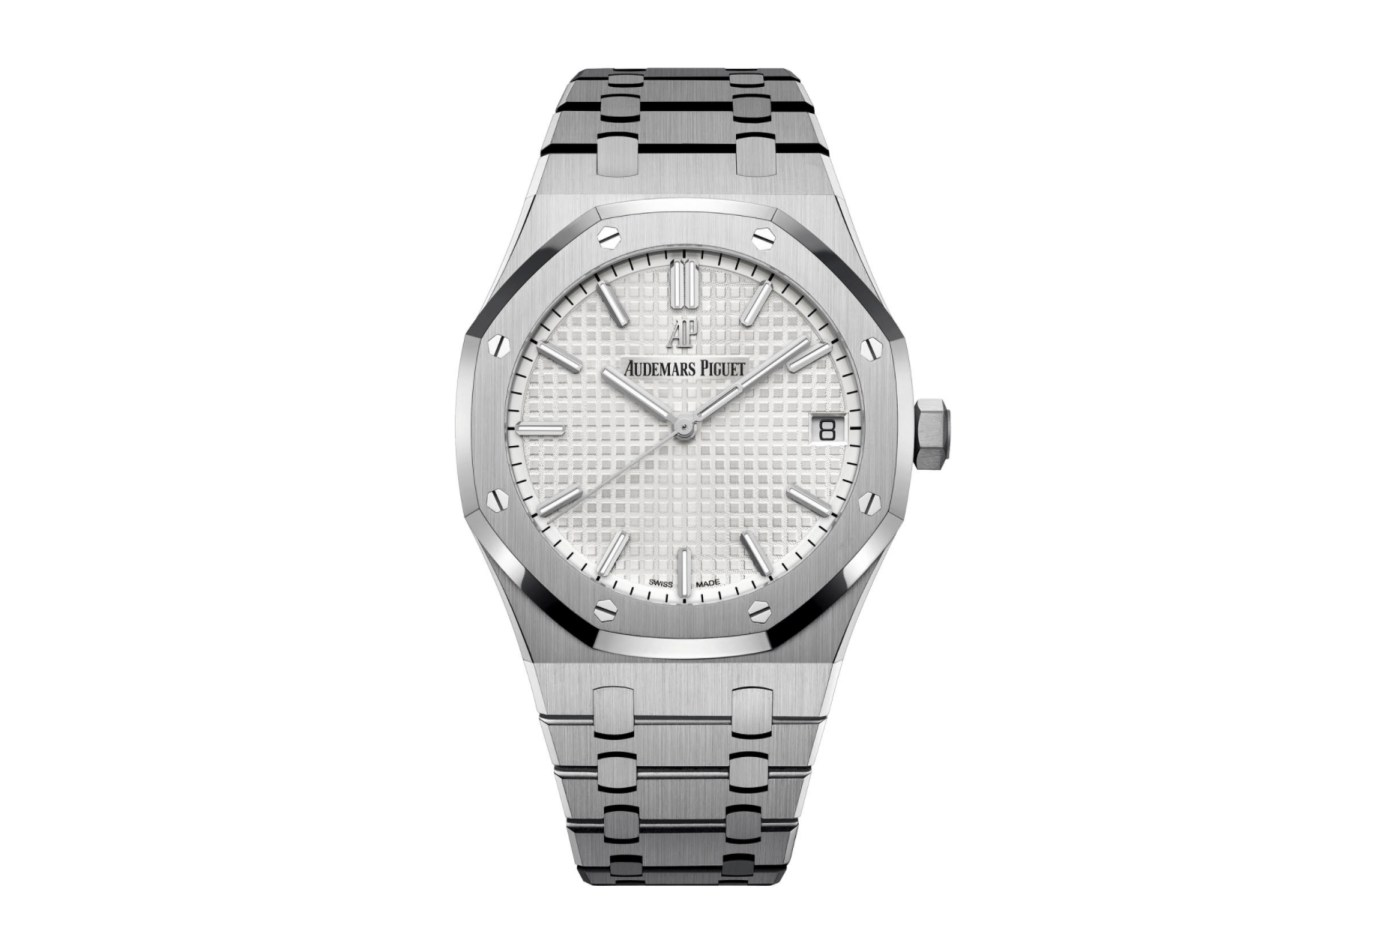 Audemars Piguet Royal Oak 15500 Silver Dial